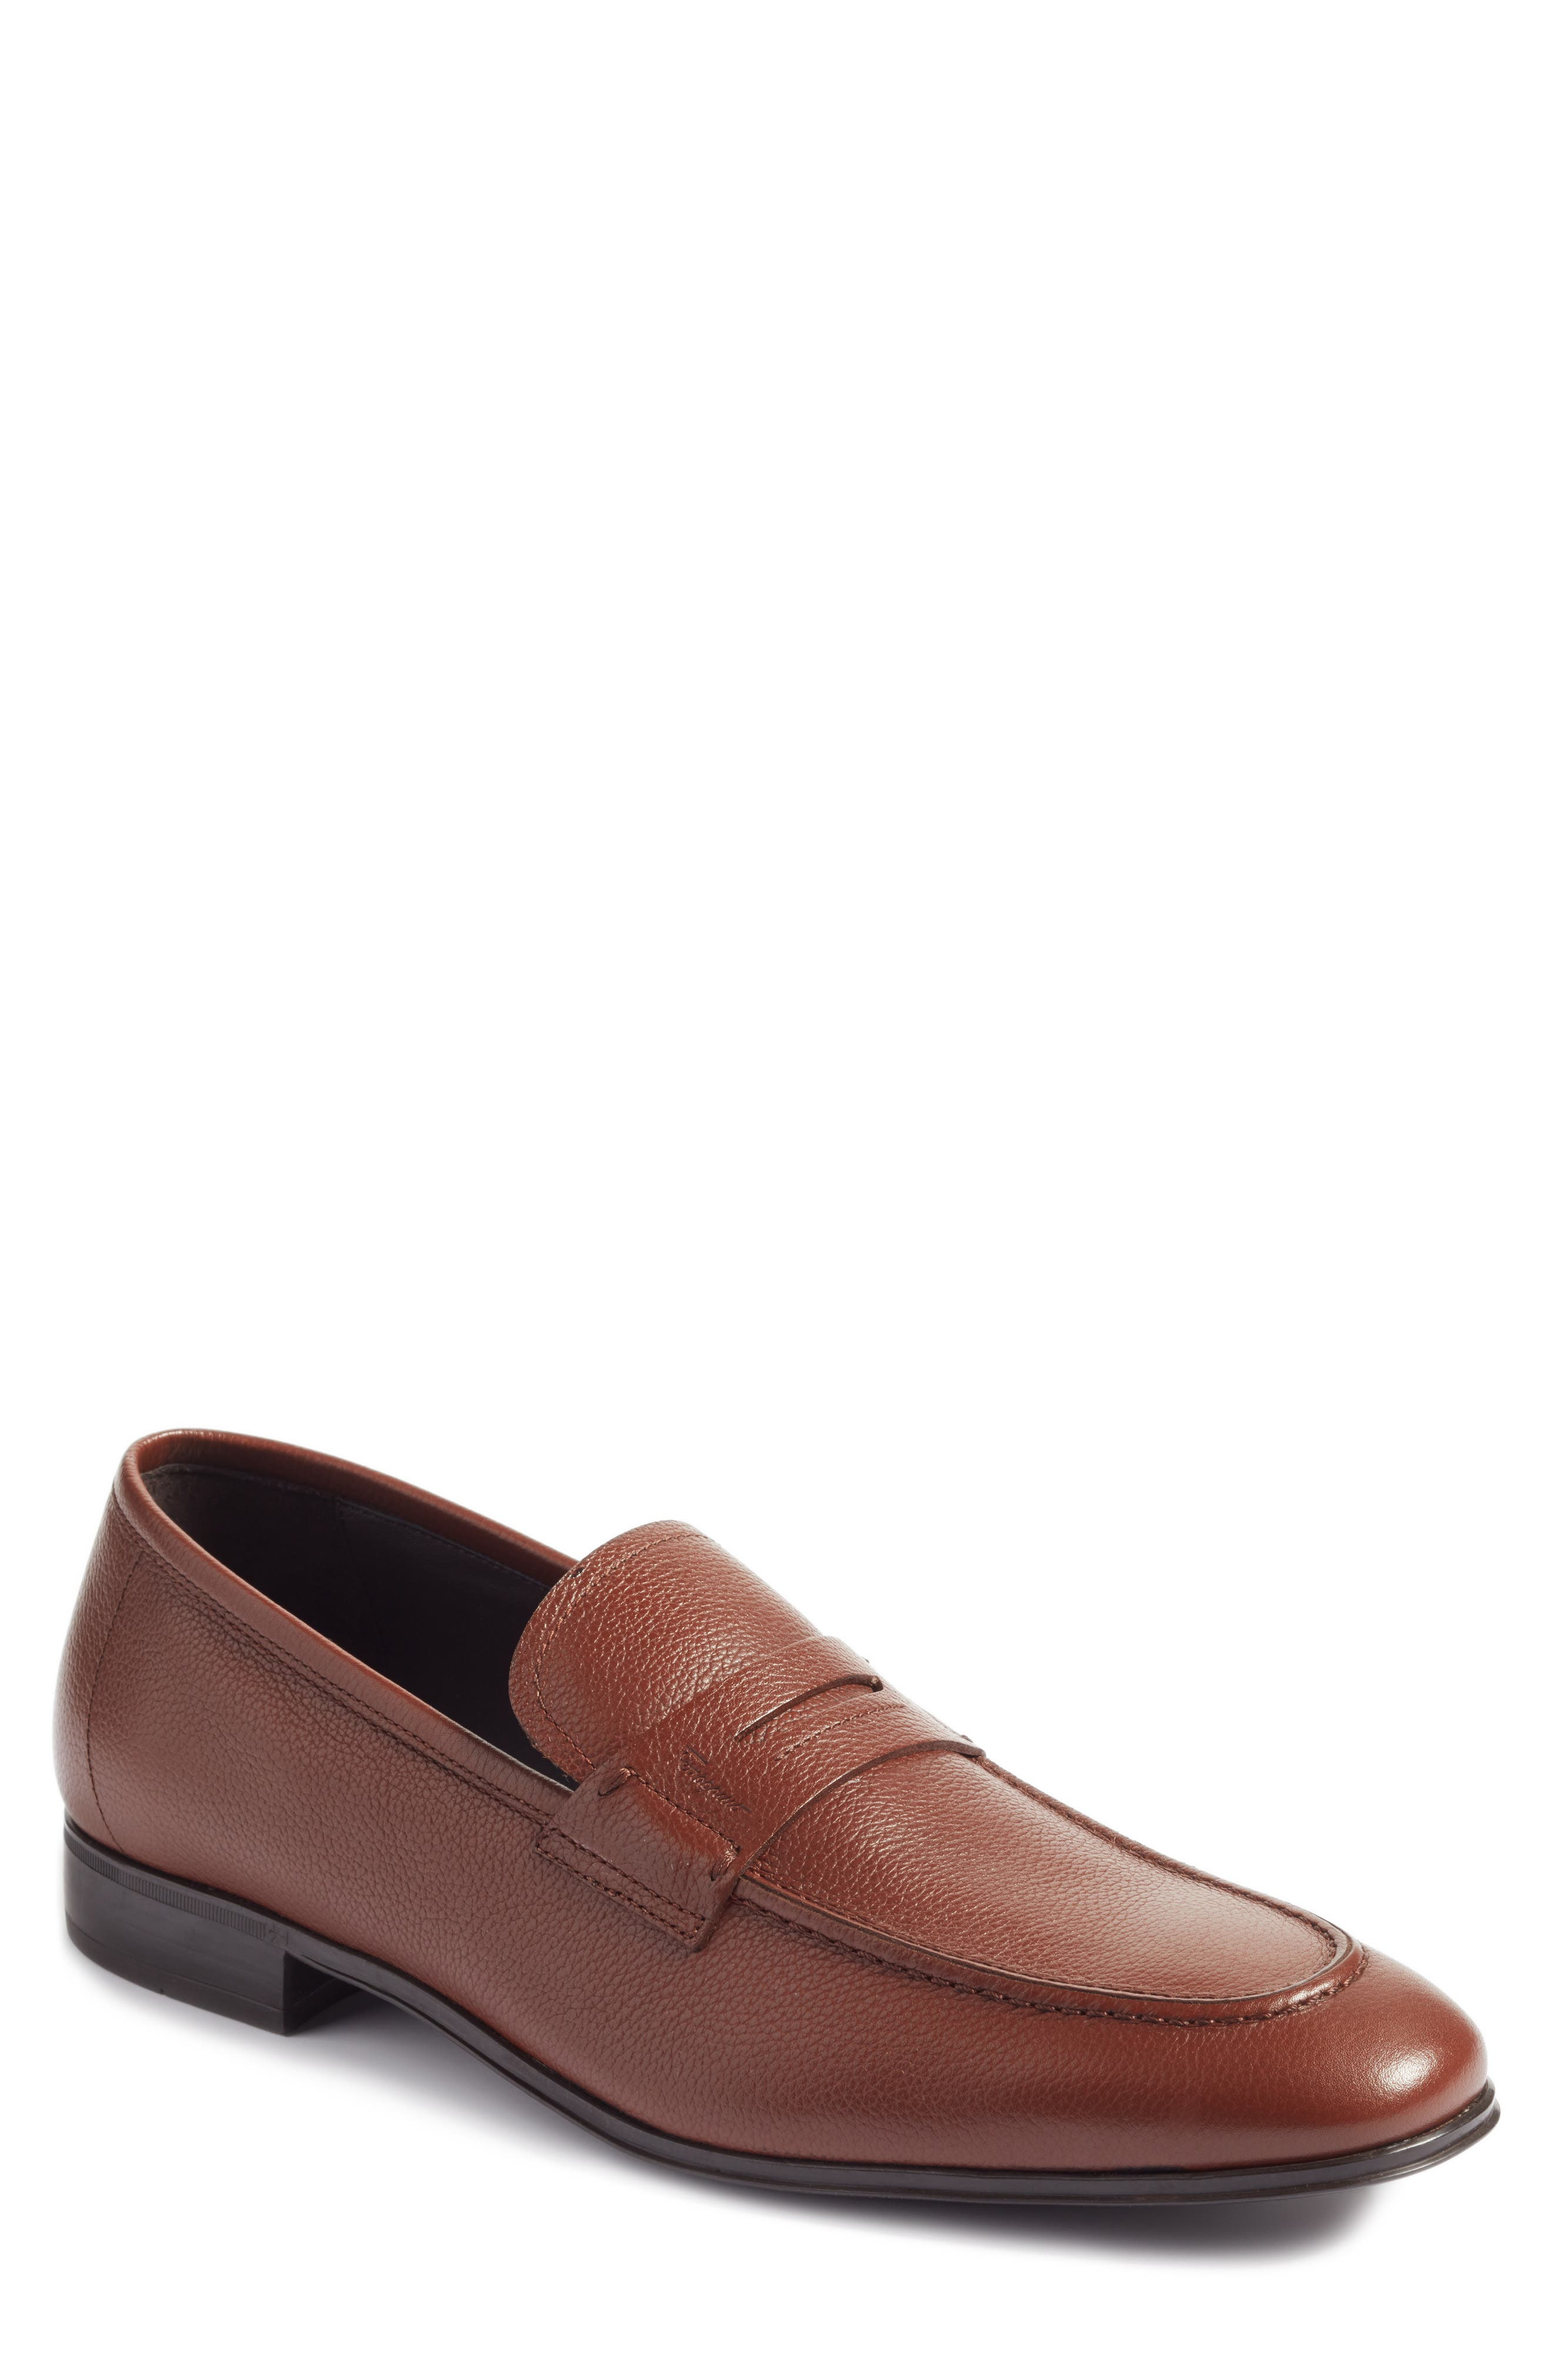 Fiorino 2 Penny Loafer,                             Main thumbnail 1, color,                             Dark Cuoio Leather